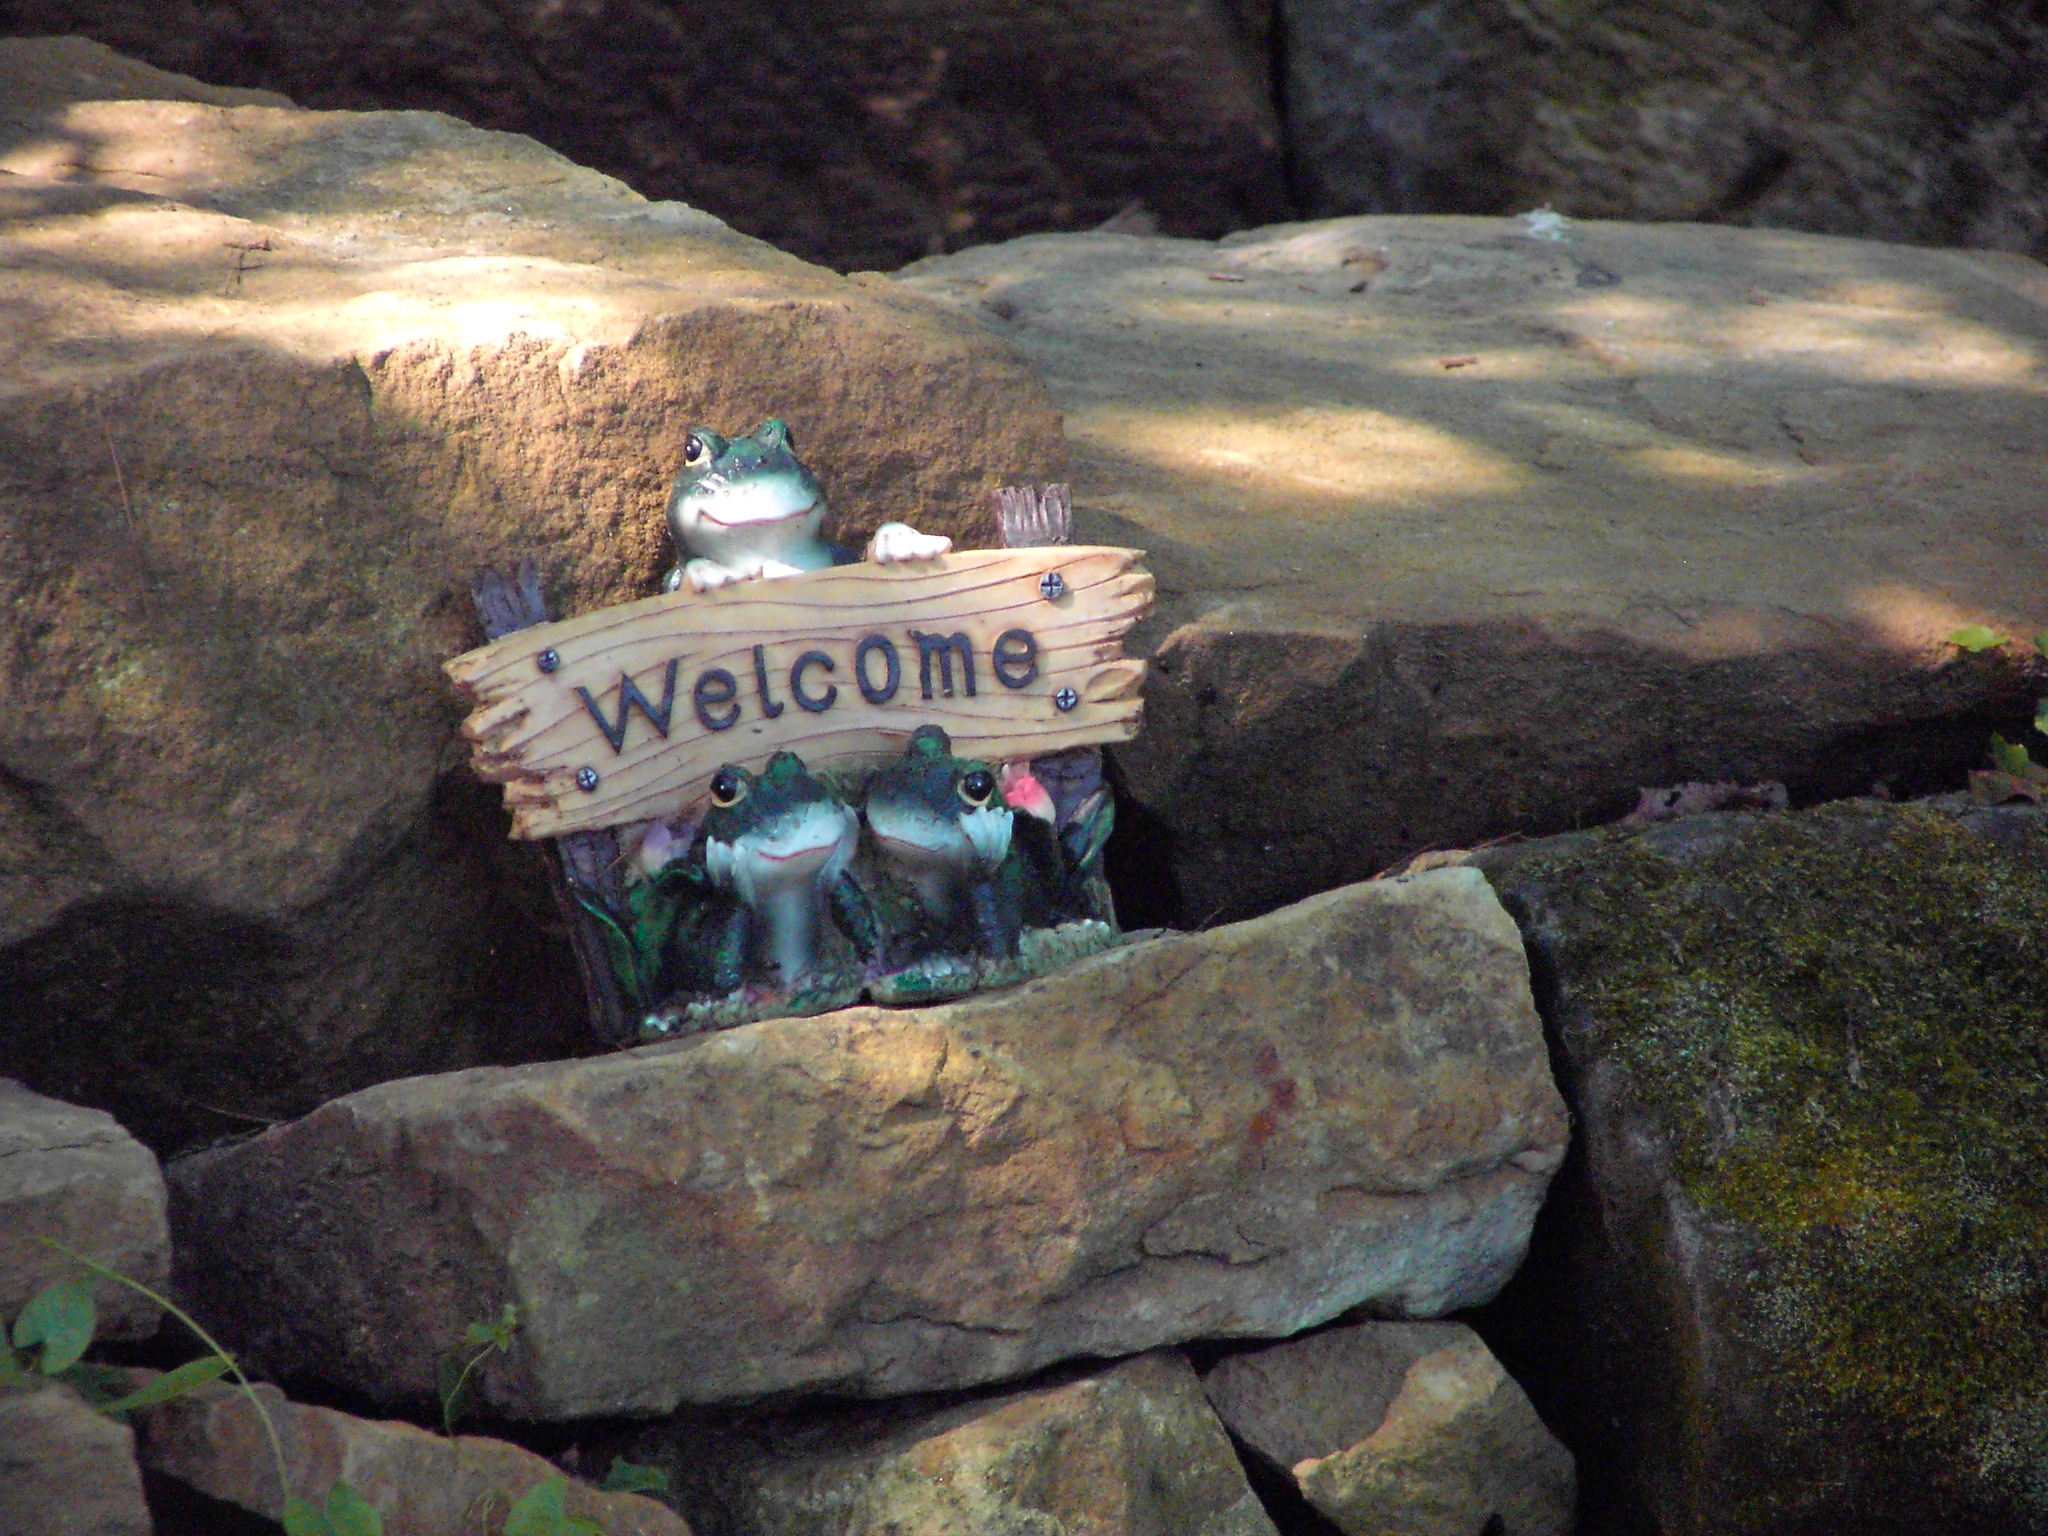 Frog_welcome_sign